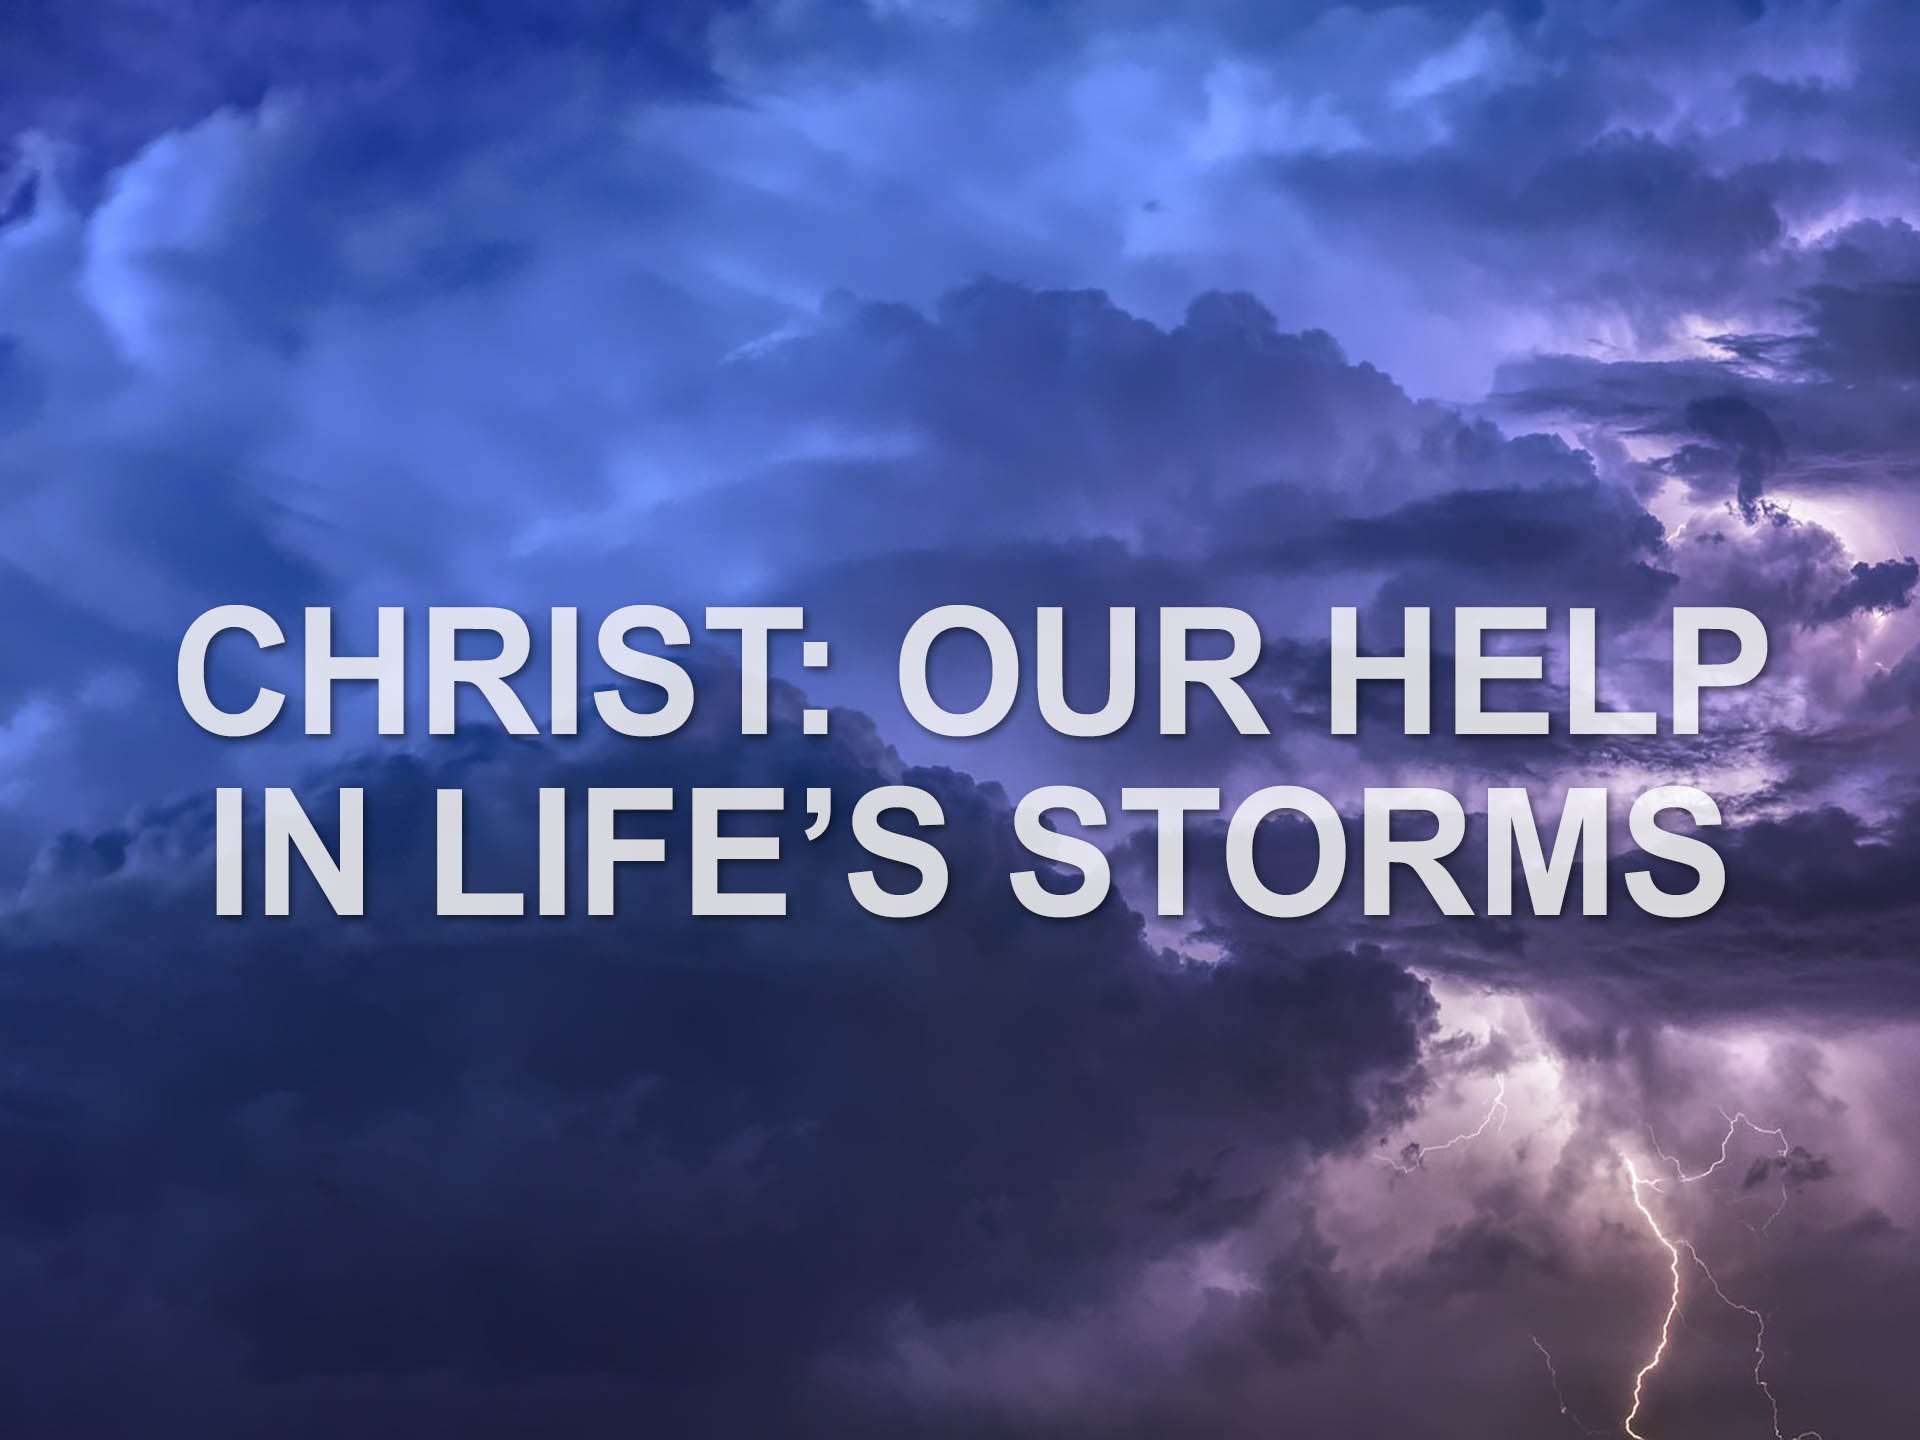 Christ: Our Help in Life's Storms